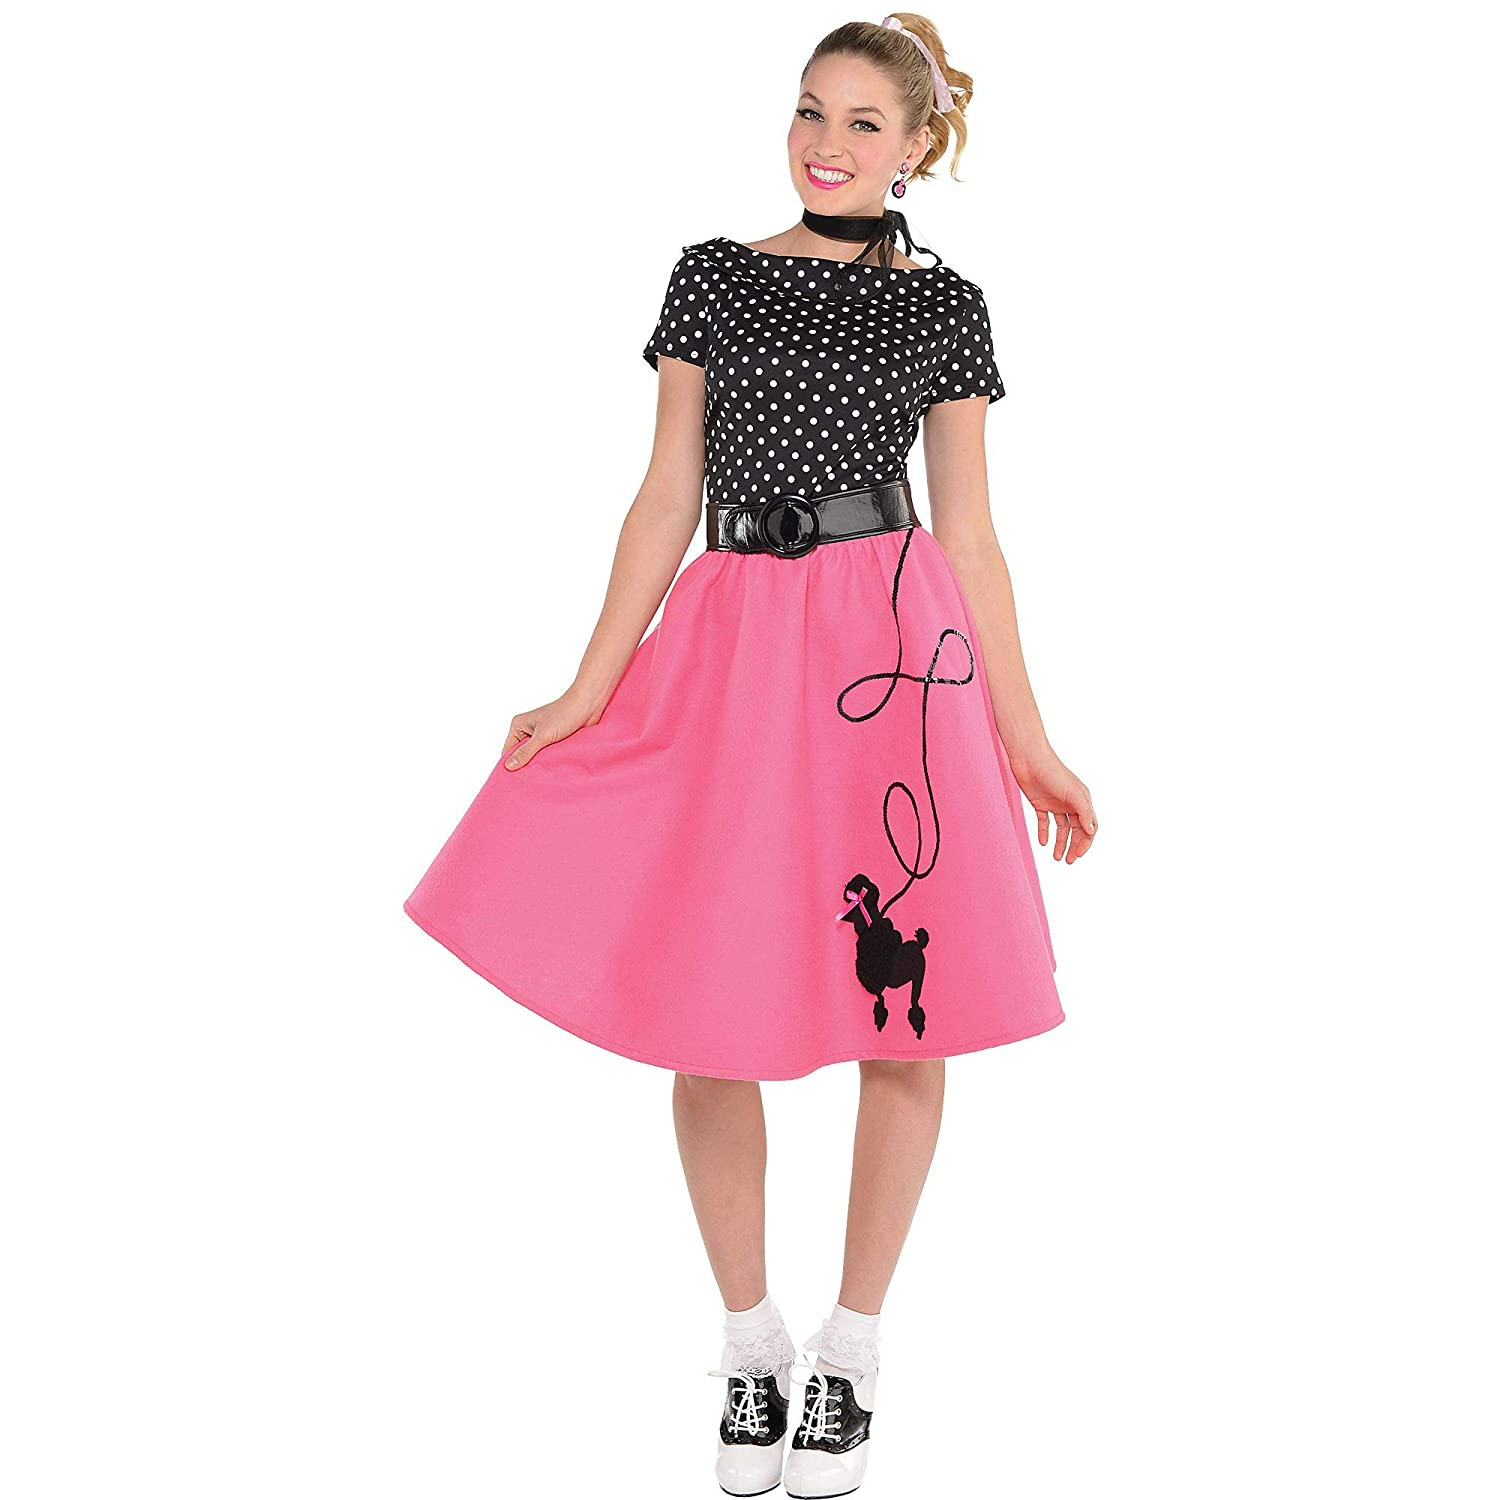 615e101f405c Adult 50's Flair Costume Dress size SMALL: Amscan: Amazon.co.uk: Toys &  Games